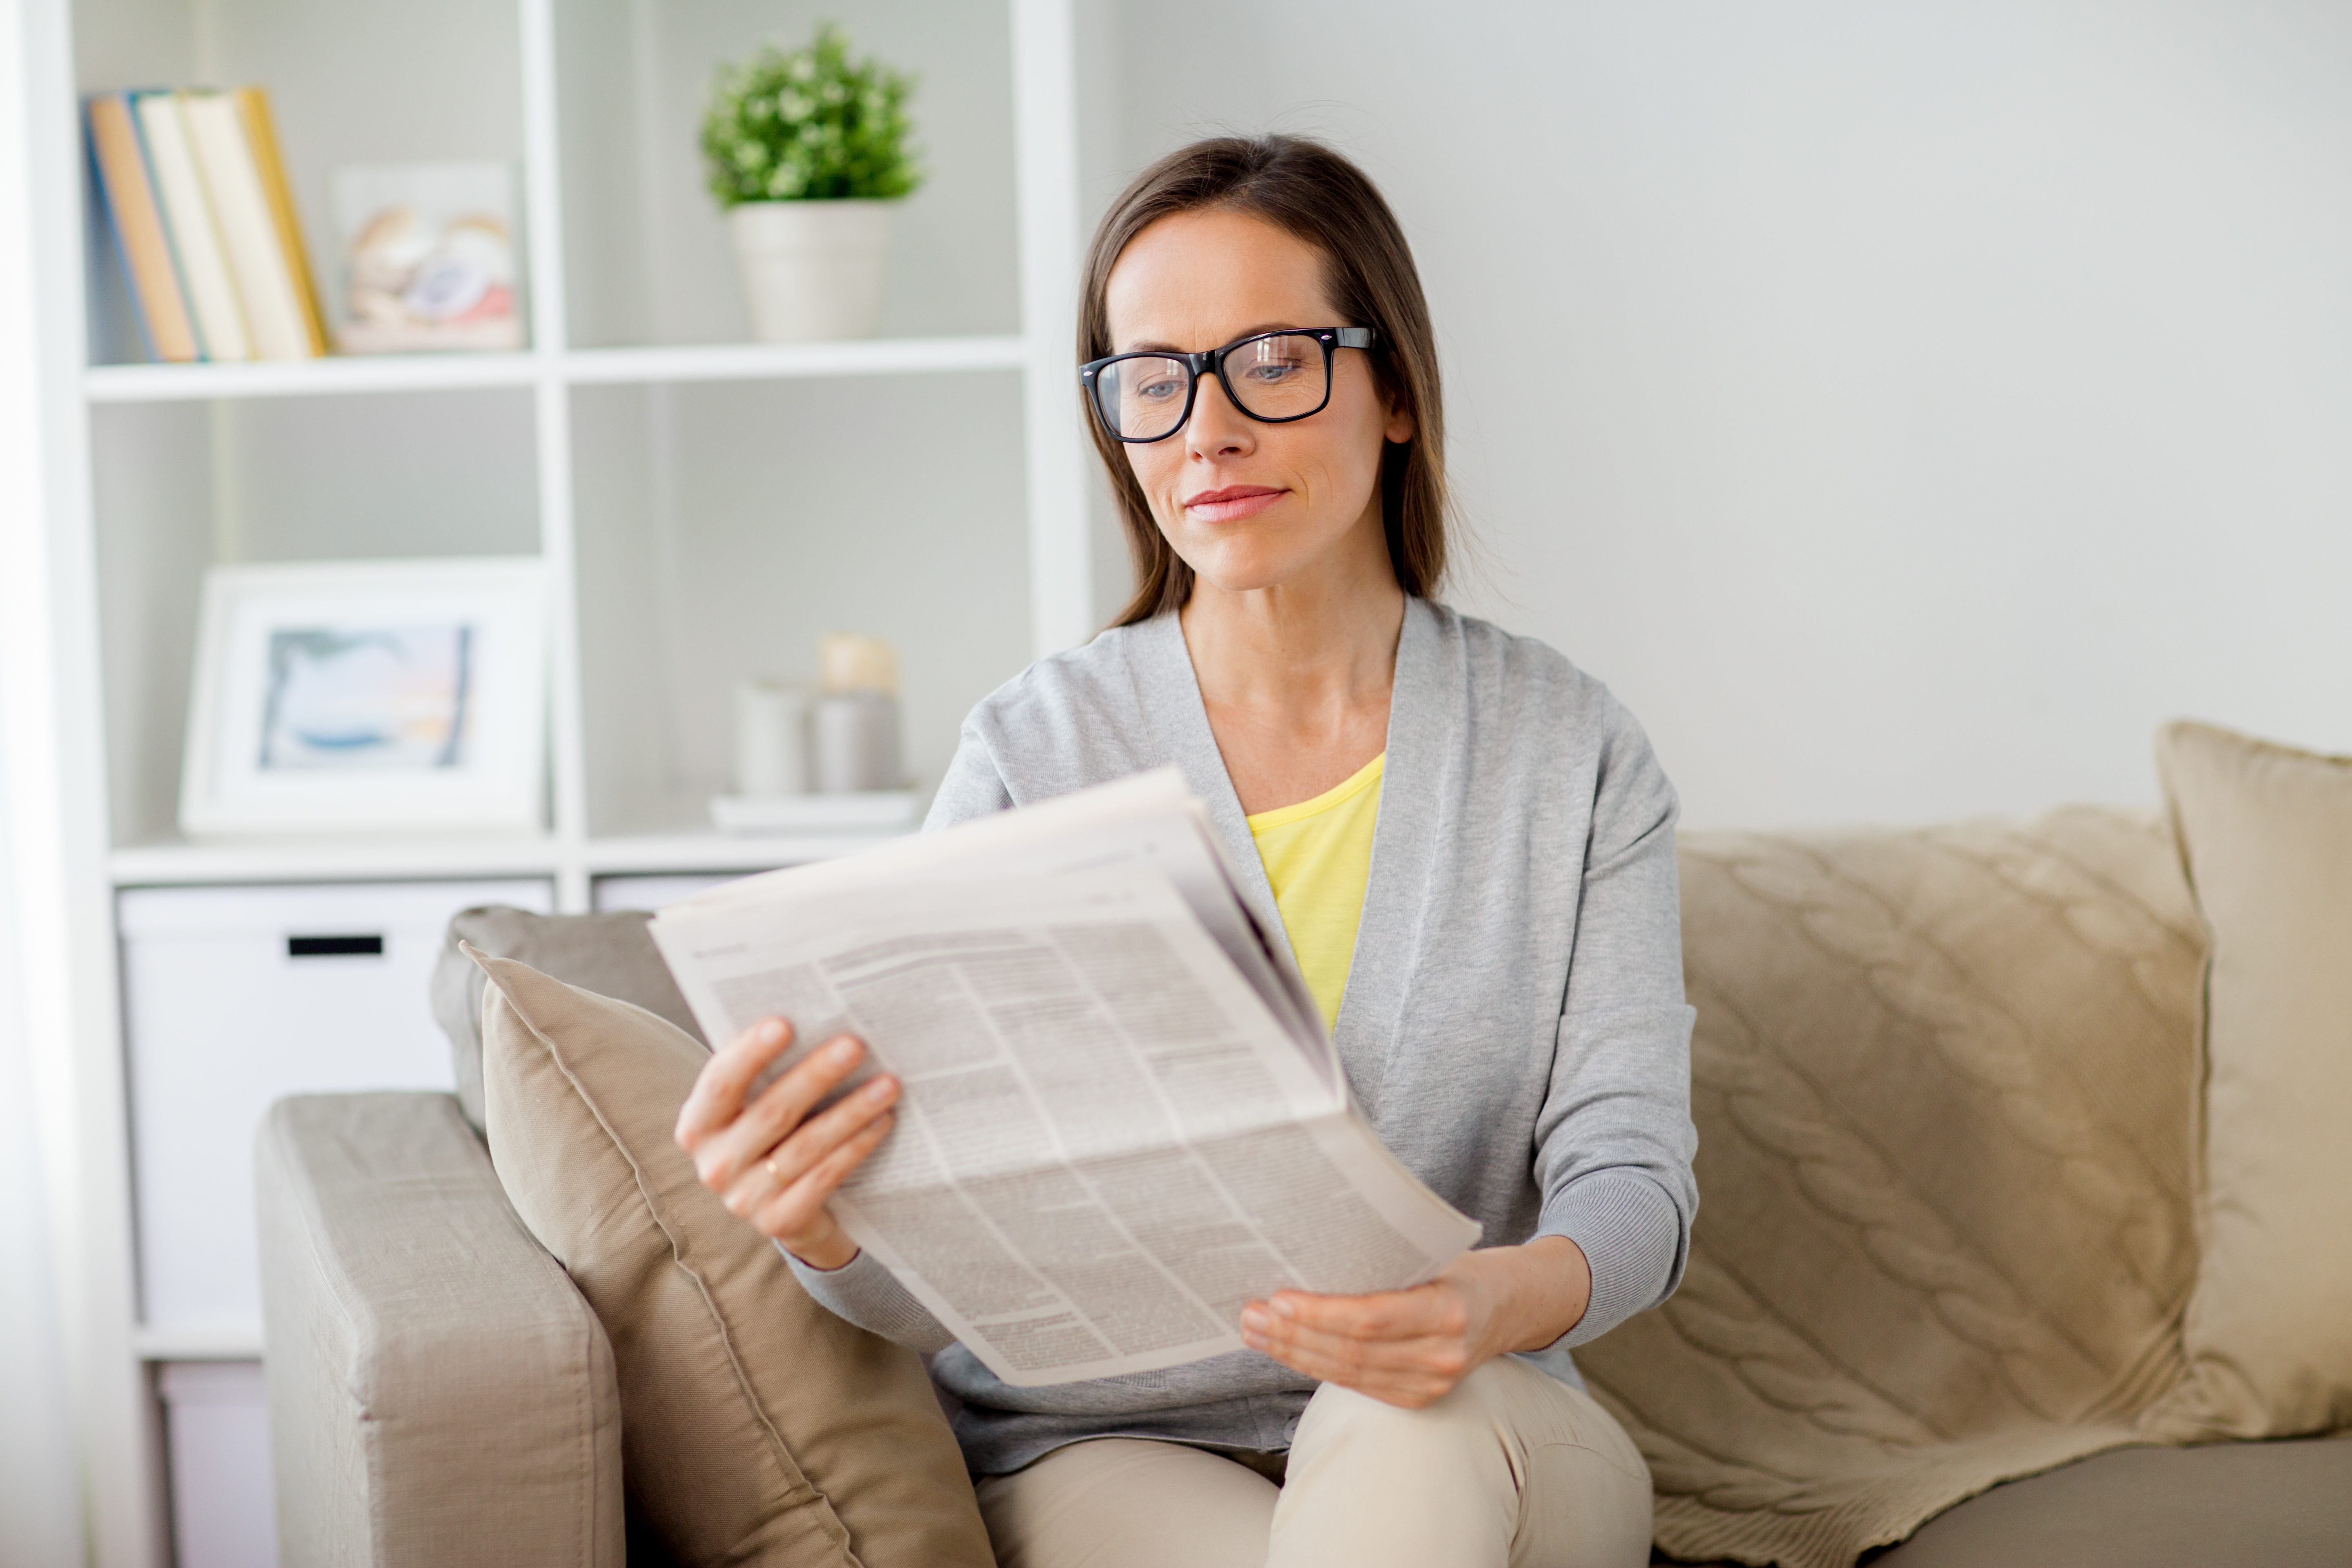 Woman in glasses reading newspaper at home pne85lb